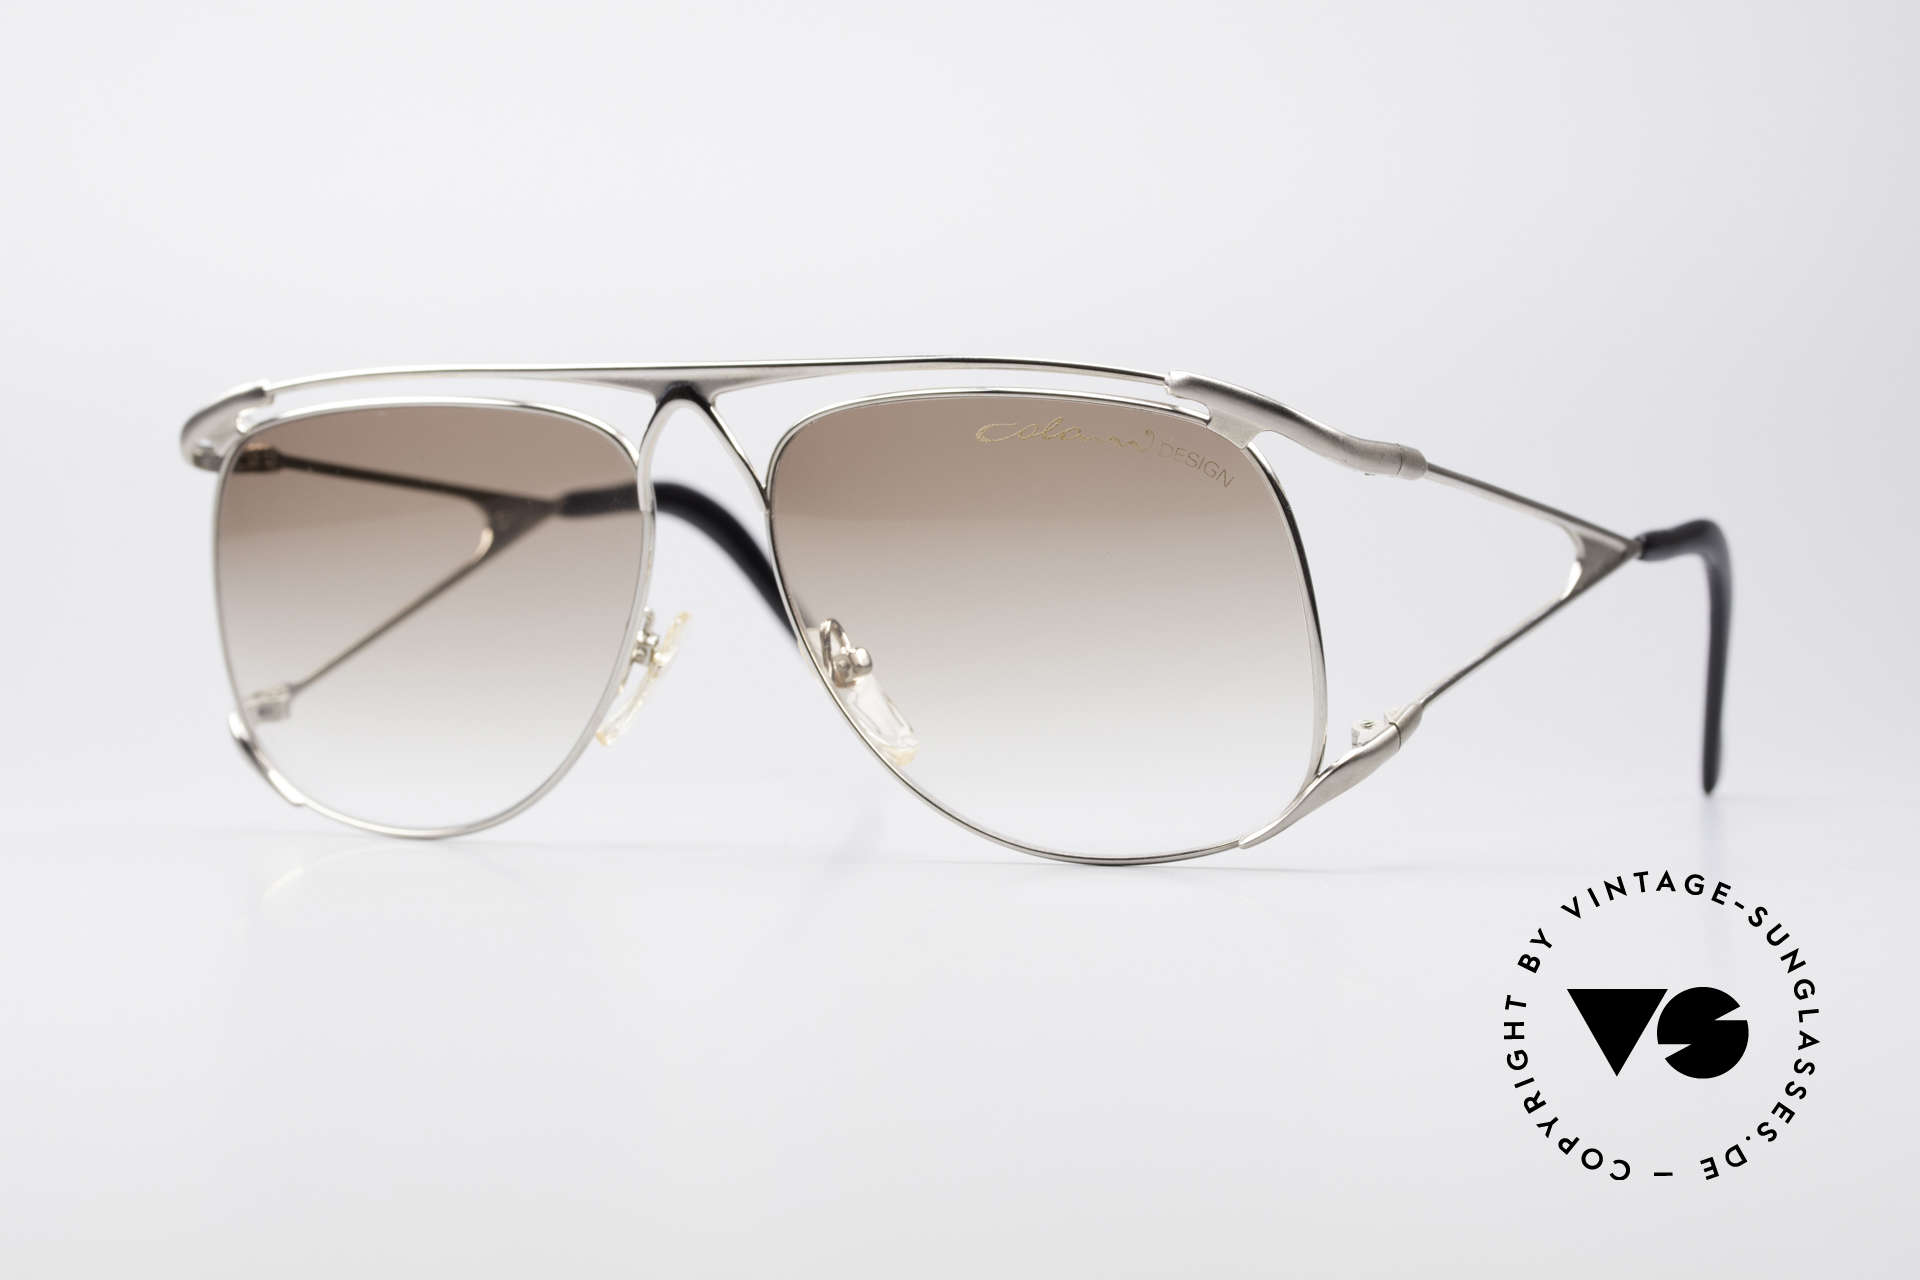 Colani 15-501 Rare 80's Designer Shades, very flashy Luigi Colani sunglasses from the 80's, Made for Men